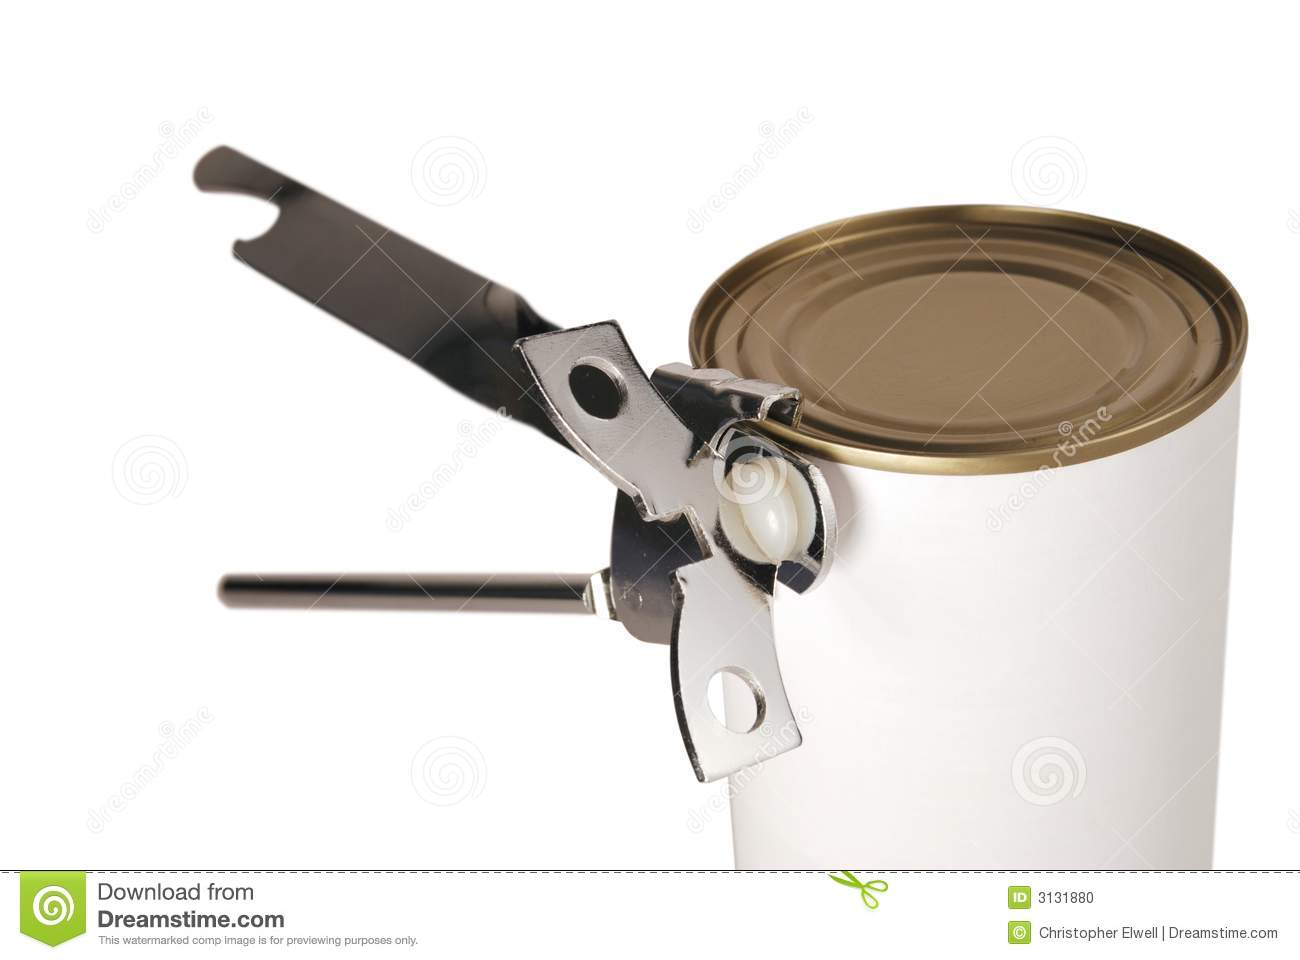 Tin can opener opening a can of food - isolated on white.